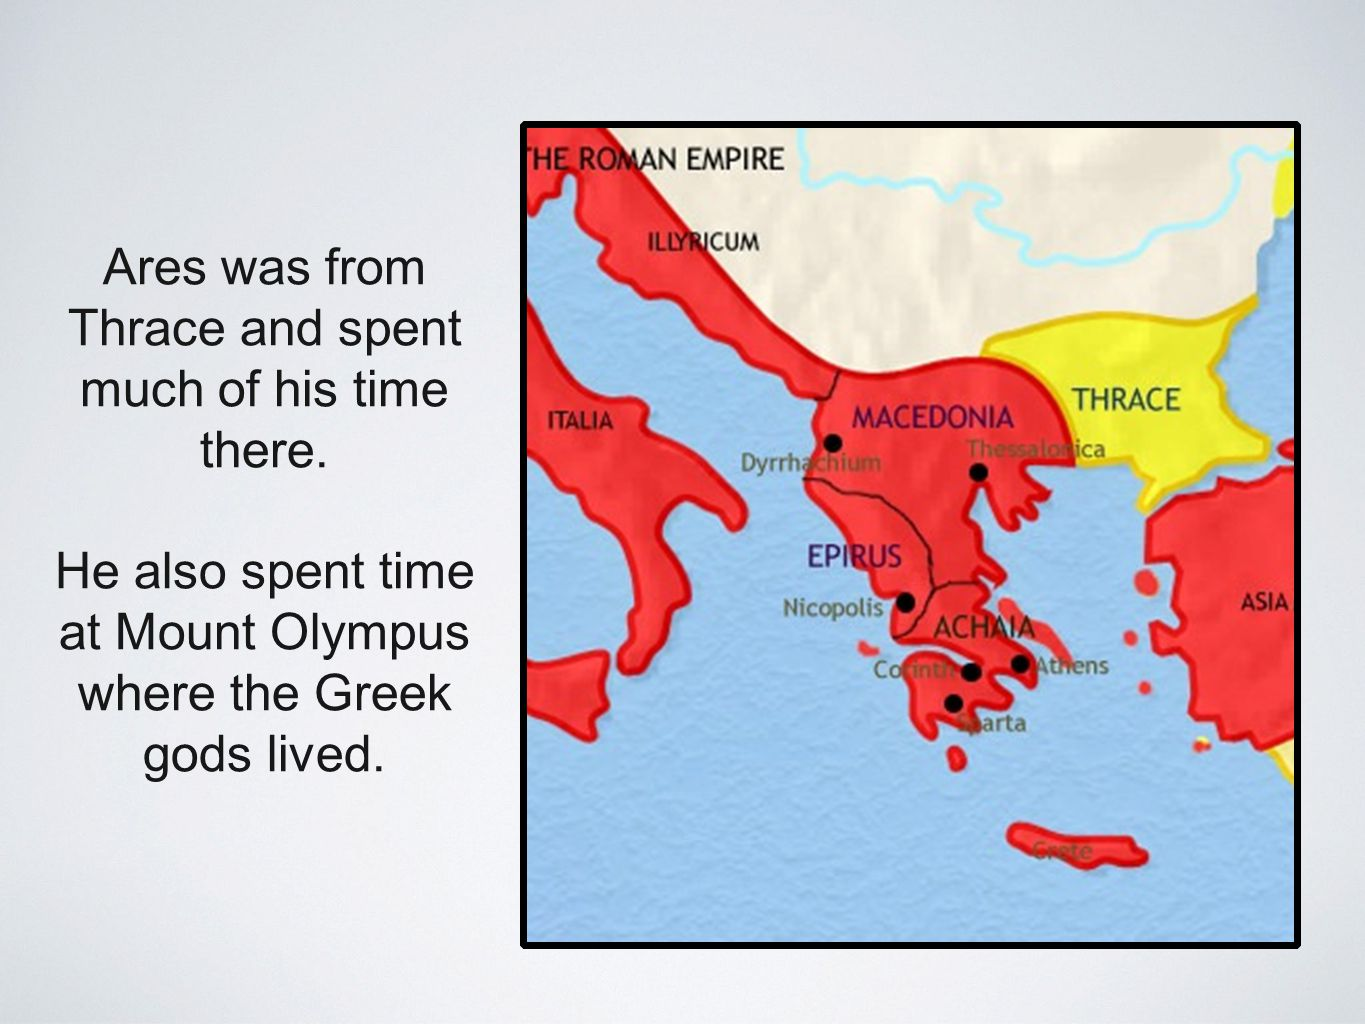 Ares was from Thrace and spent much of his time there.